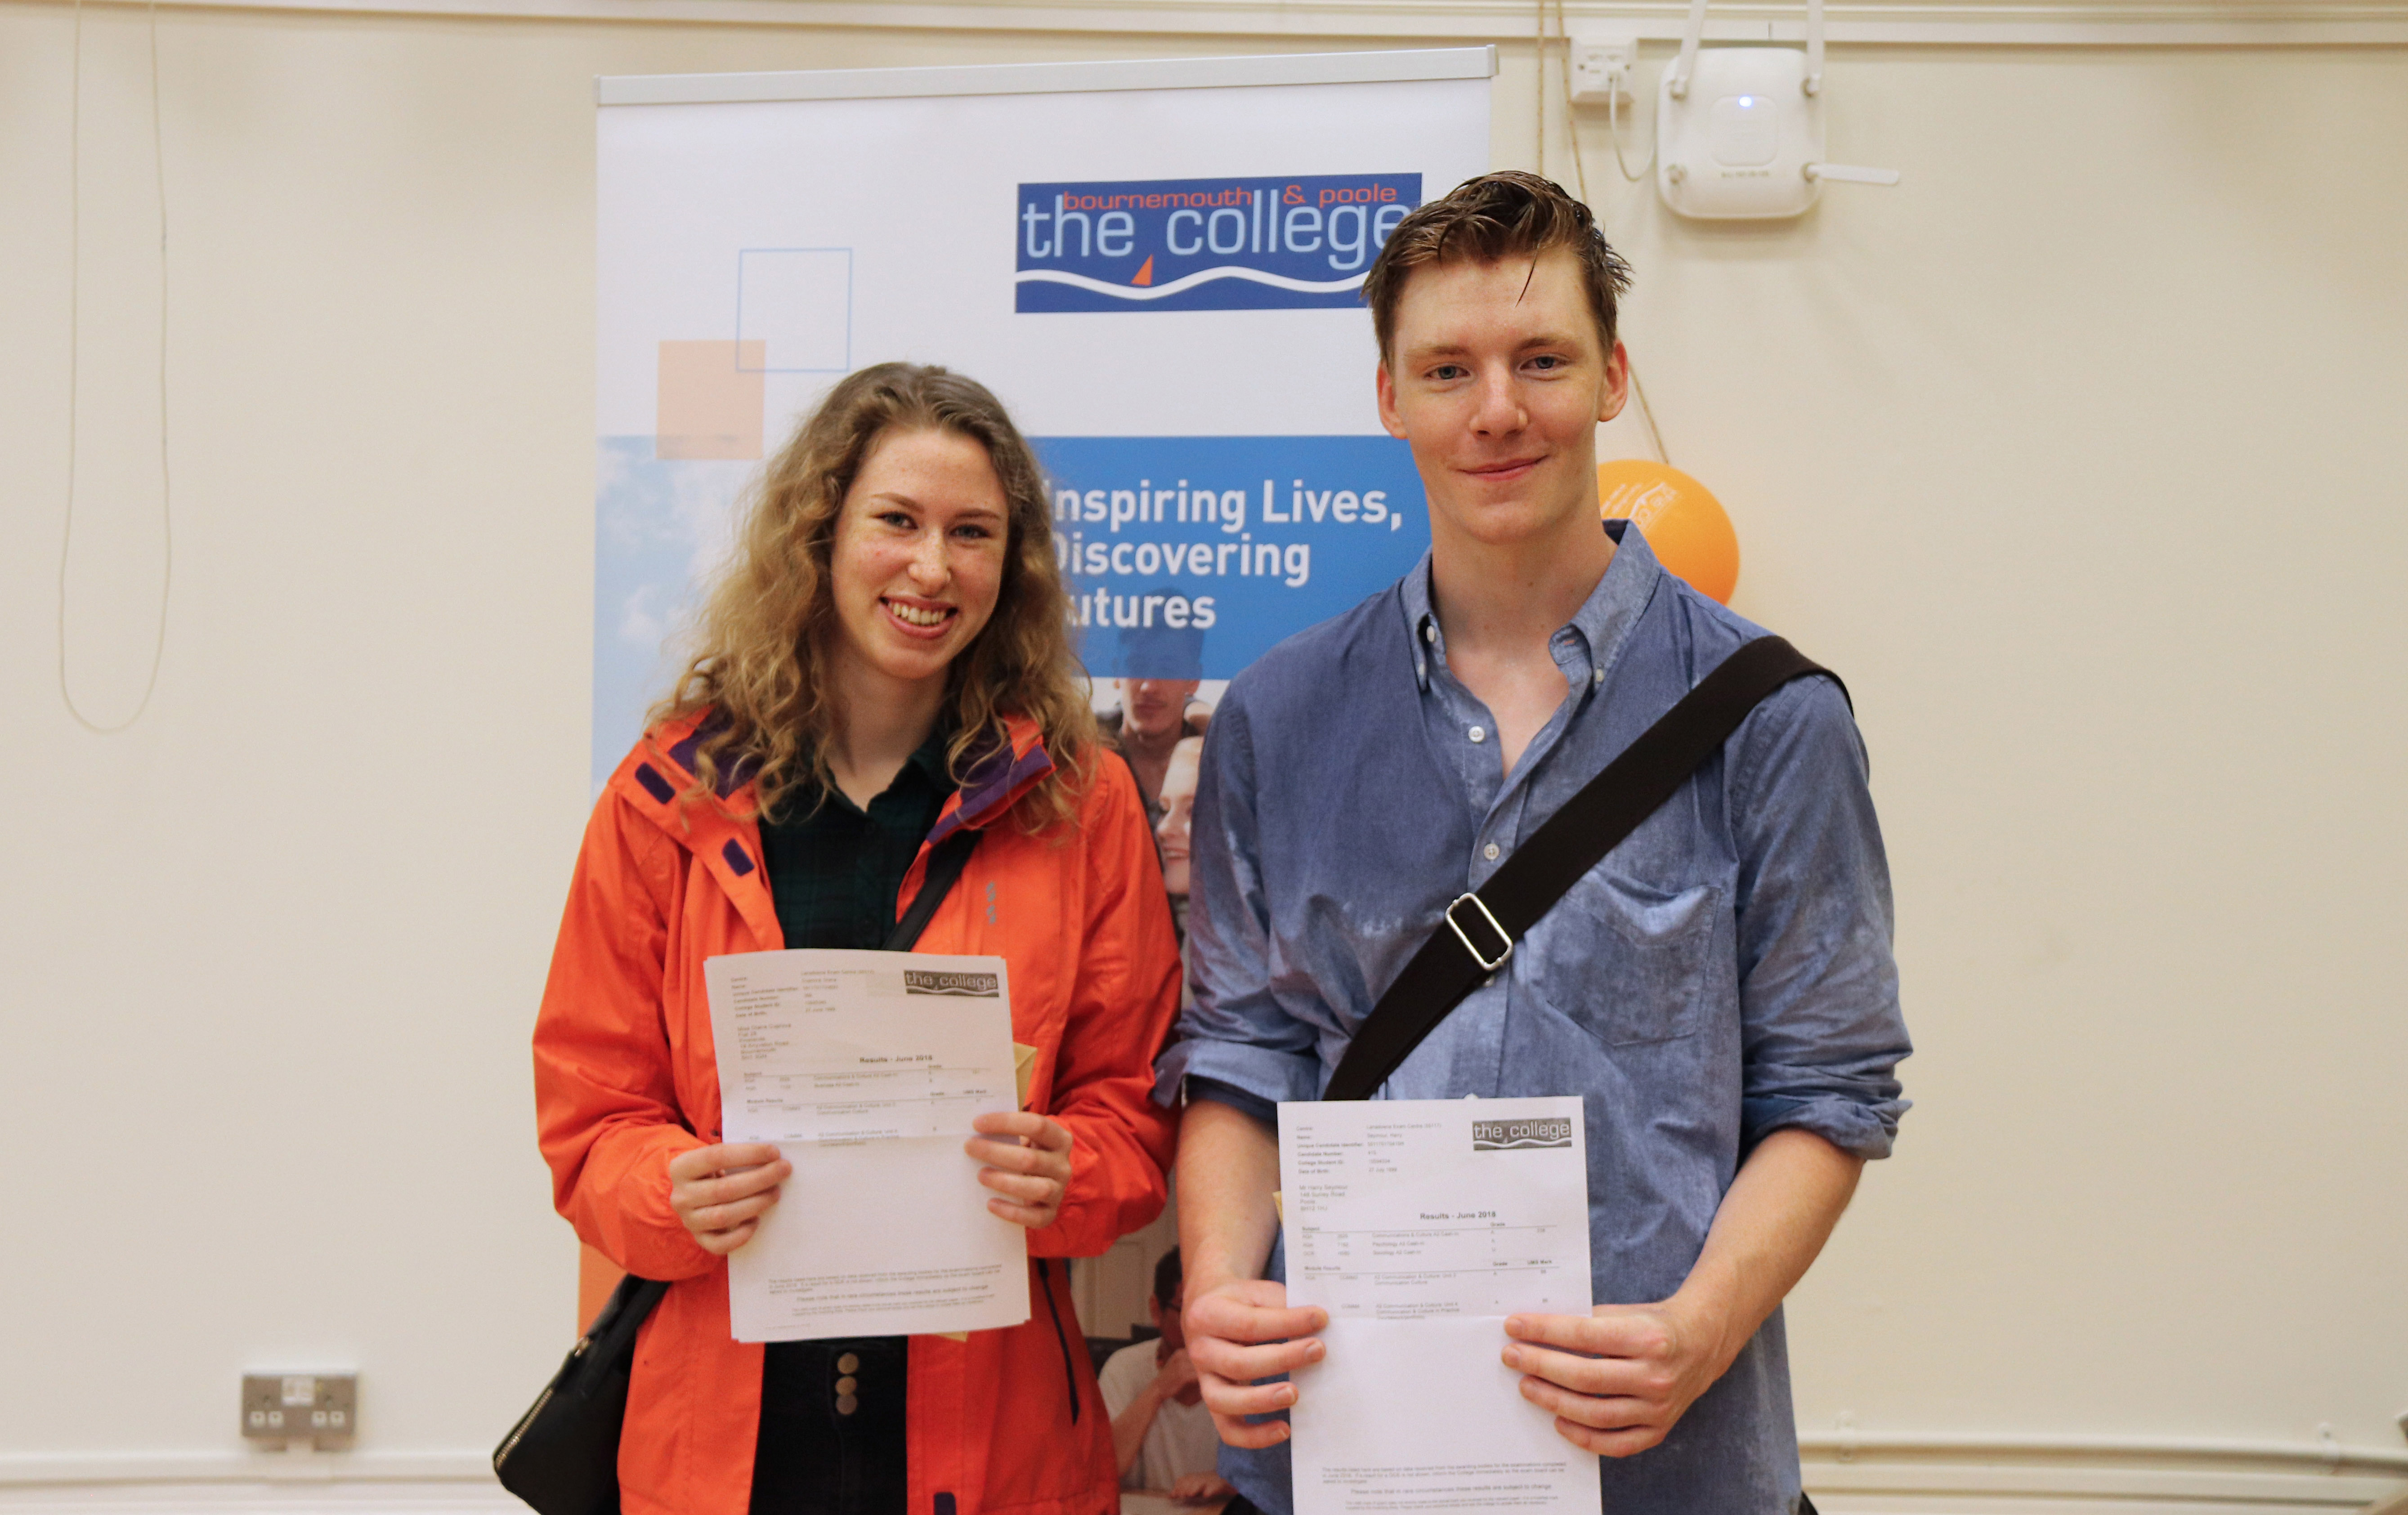 Diana Cuprova and Harry Seymour collects their A-Level results at Bournemouth & Poole College